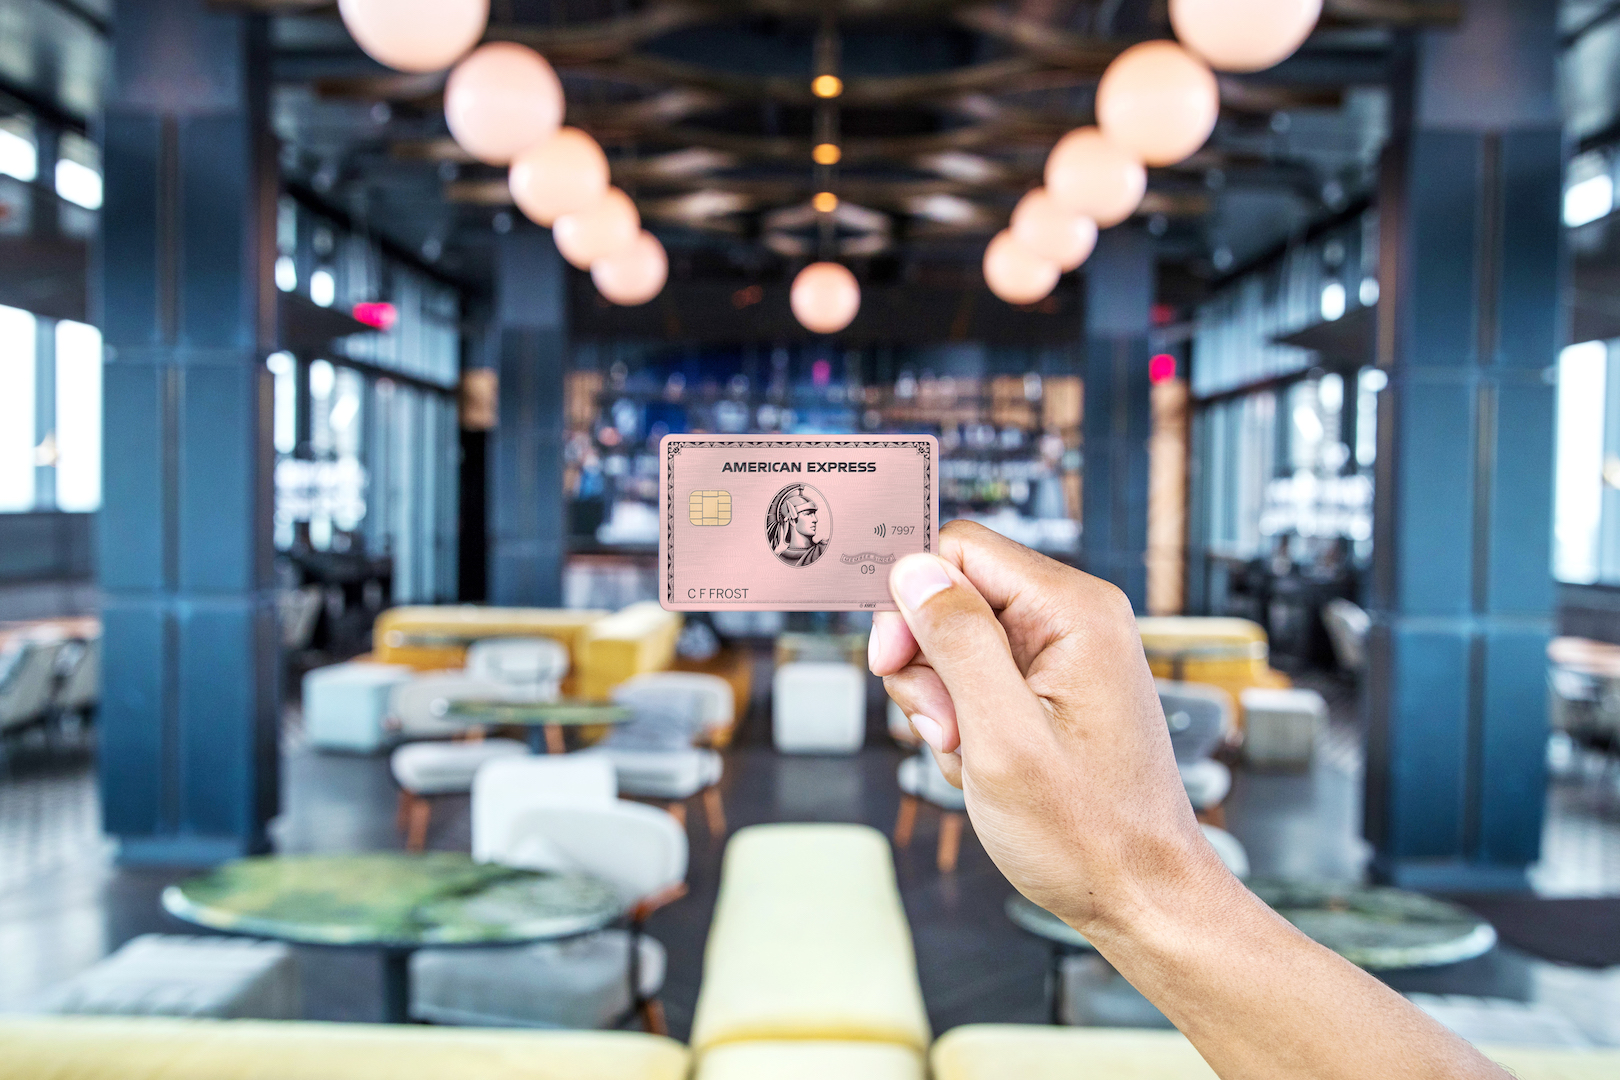 Watch American Express is launching restaurant booking like OpenTable video